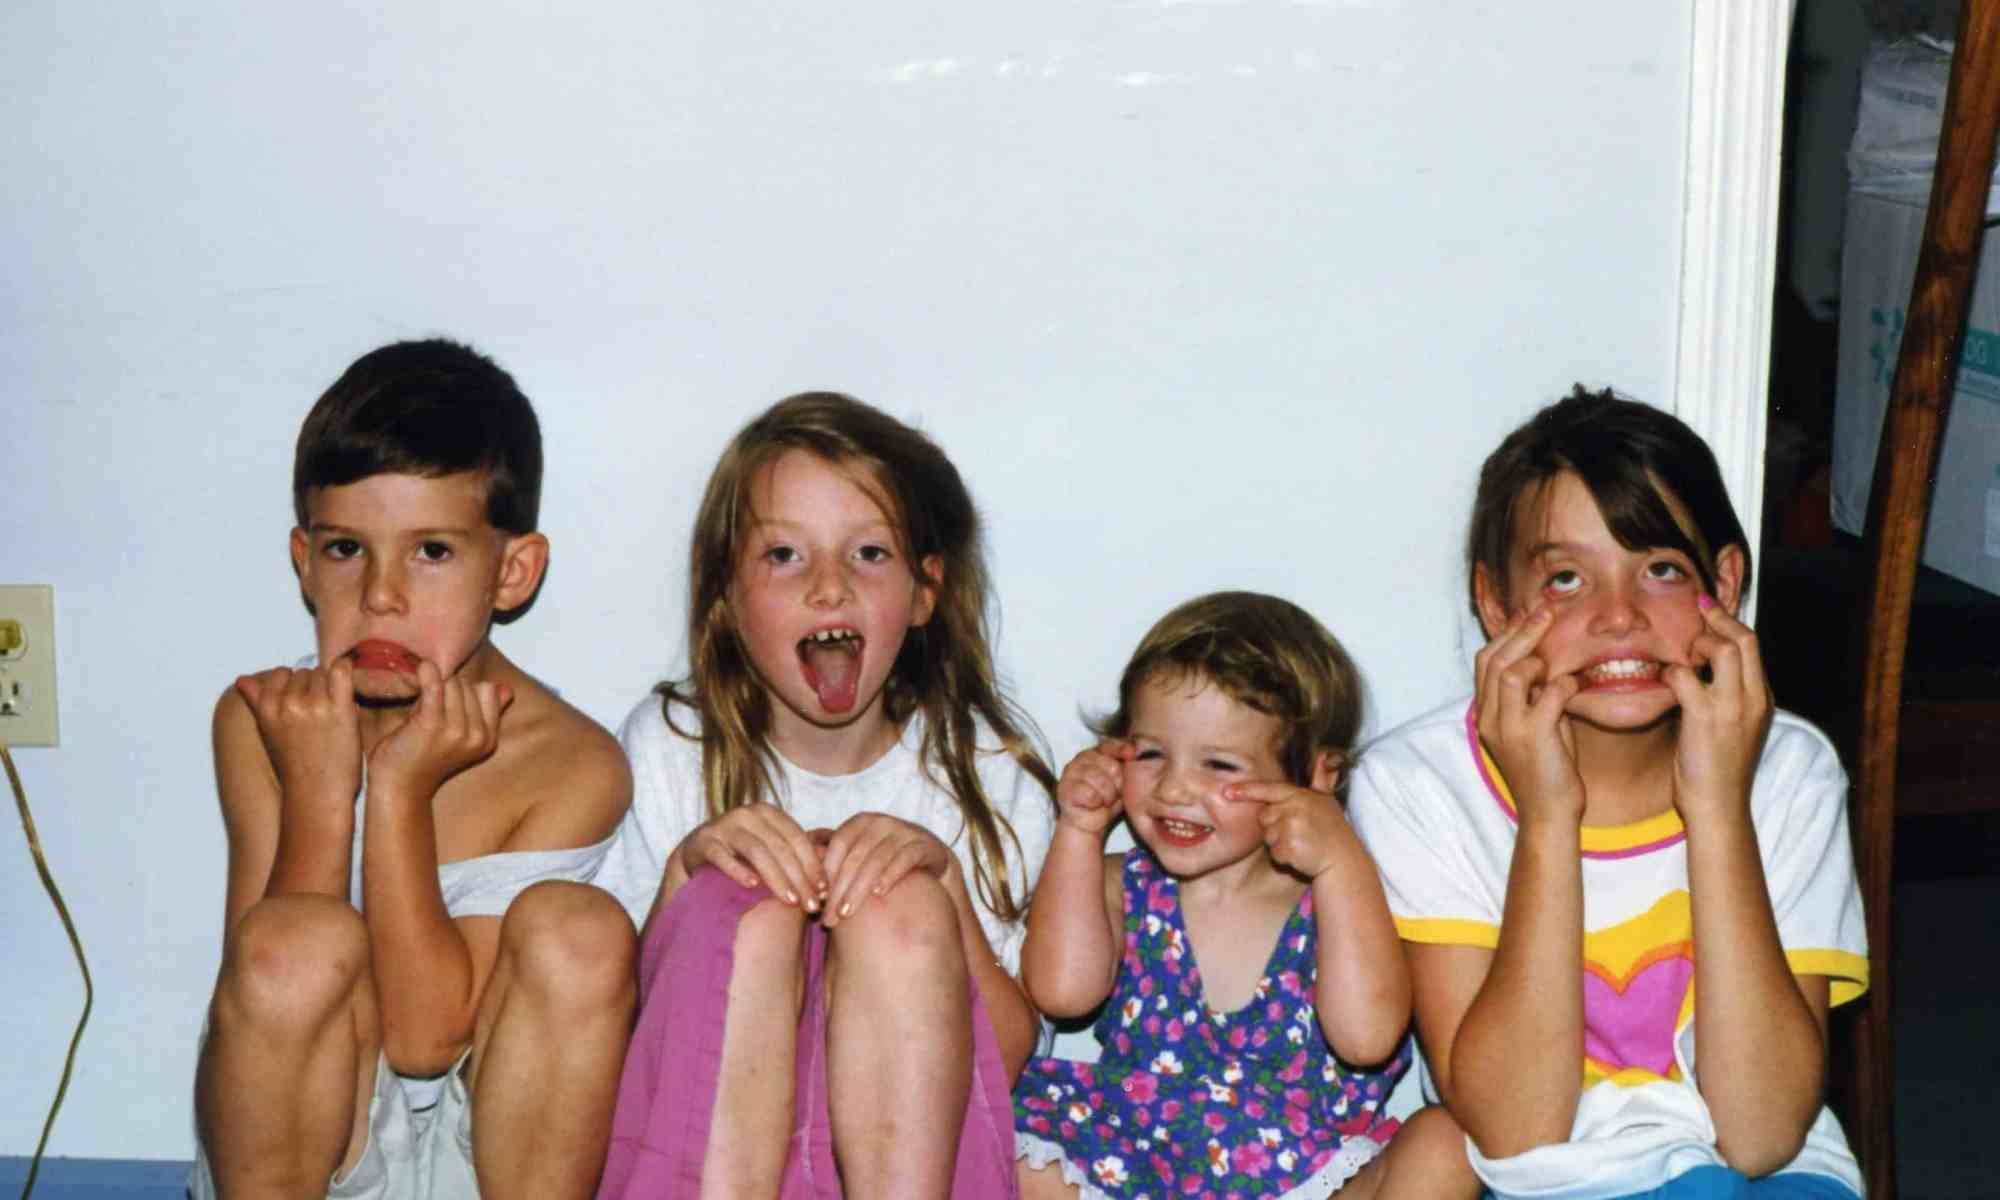 4 kids making silly faces at the camera